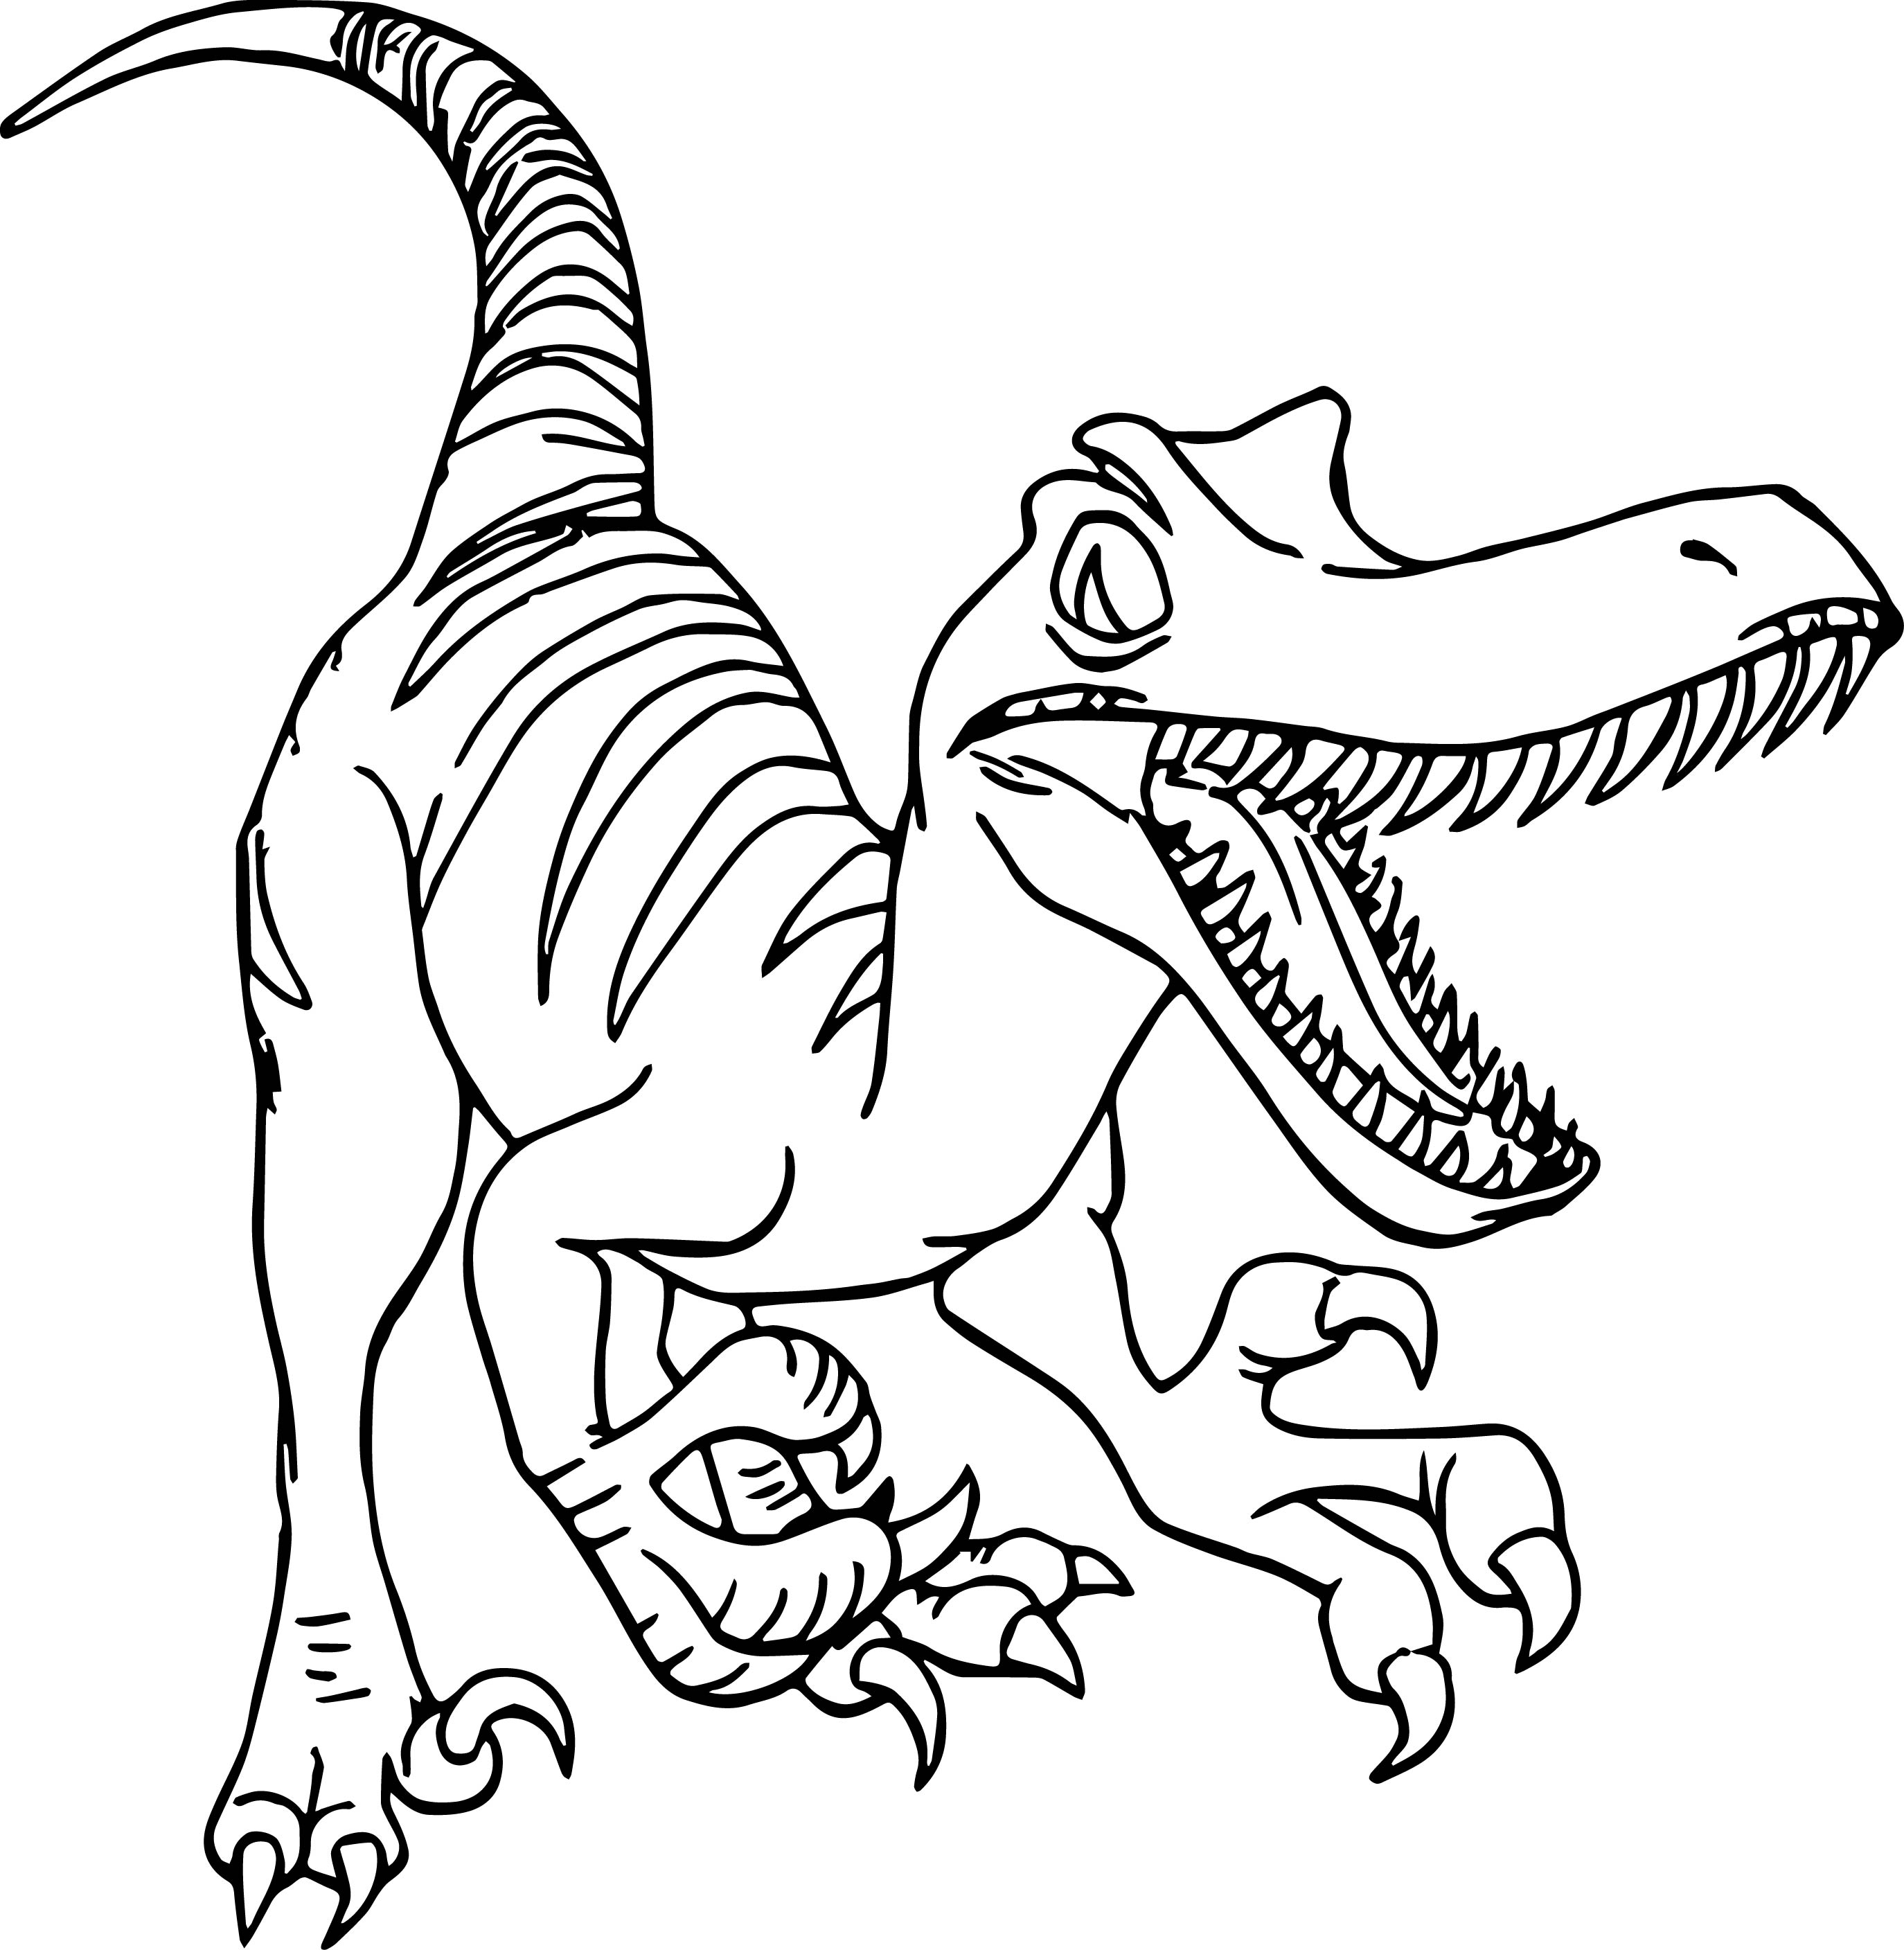 Velociraptor Coloring Pages At Getcolorings